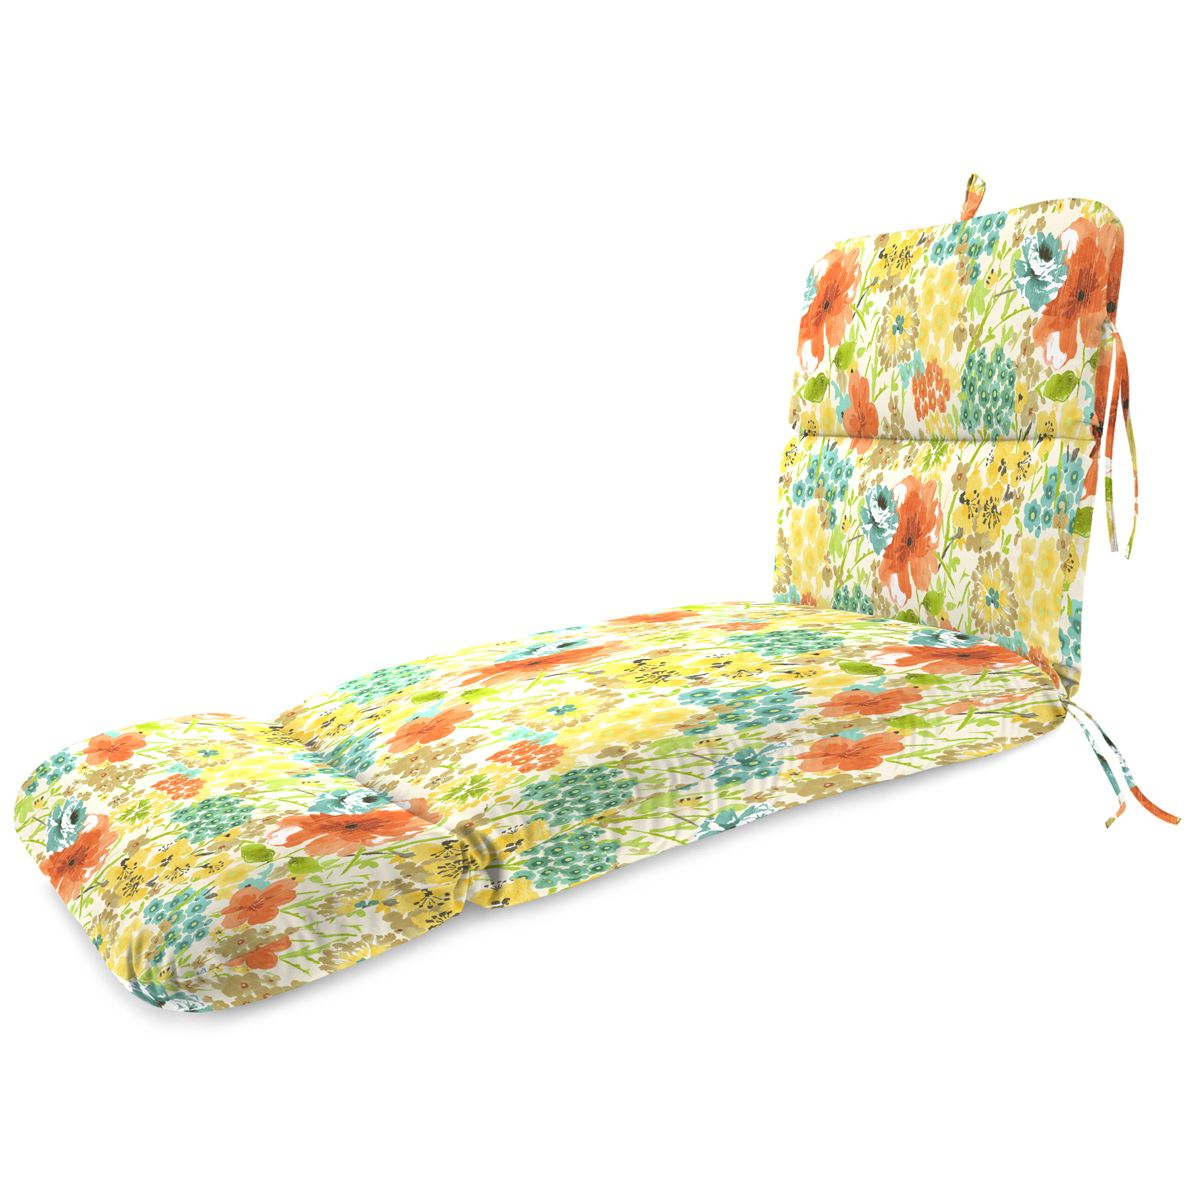 2019 Floral Blossom Chaise Lounge Chairs With Cushion Regarding Jordan Manufacturing Chaise Cushion – Flower Of Life (View 22 of 25)